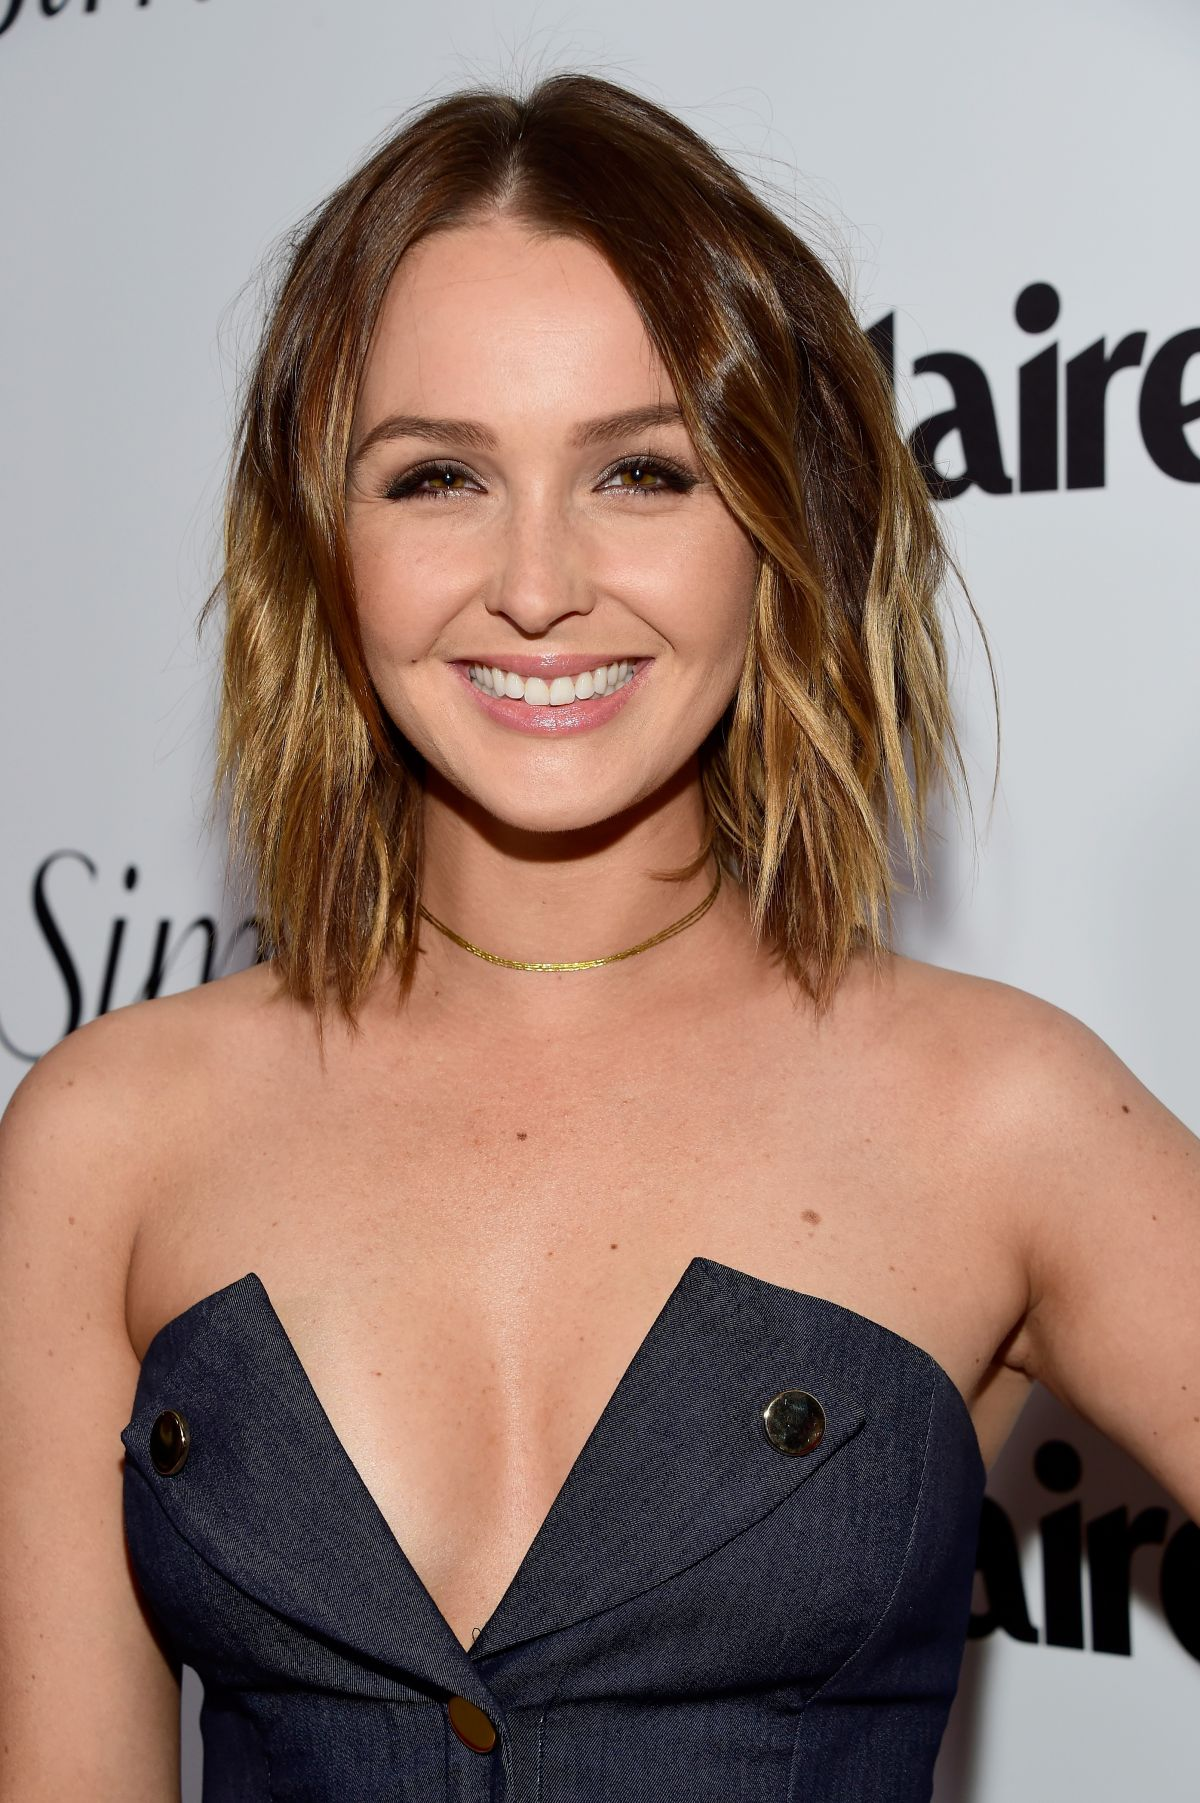 camilla luddington at marie claire hosts fresh faces party in los angeles 04 11 2016 hawtcelebs. Black Bedroom Furniture Sets. Home Design Ideas